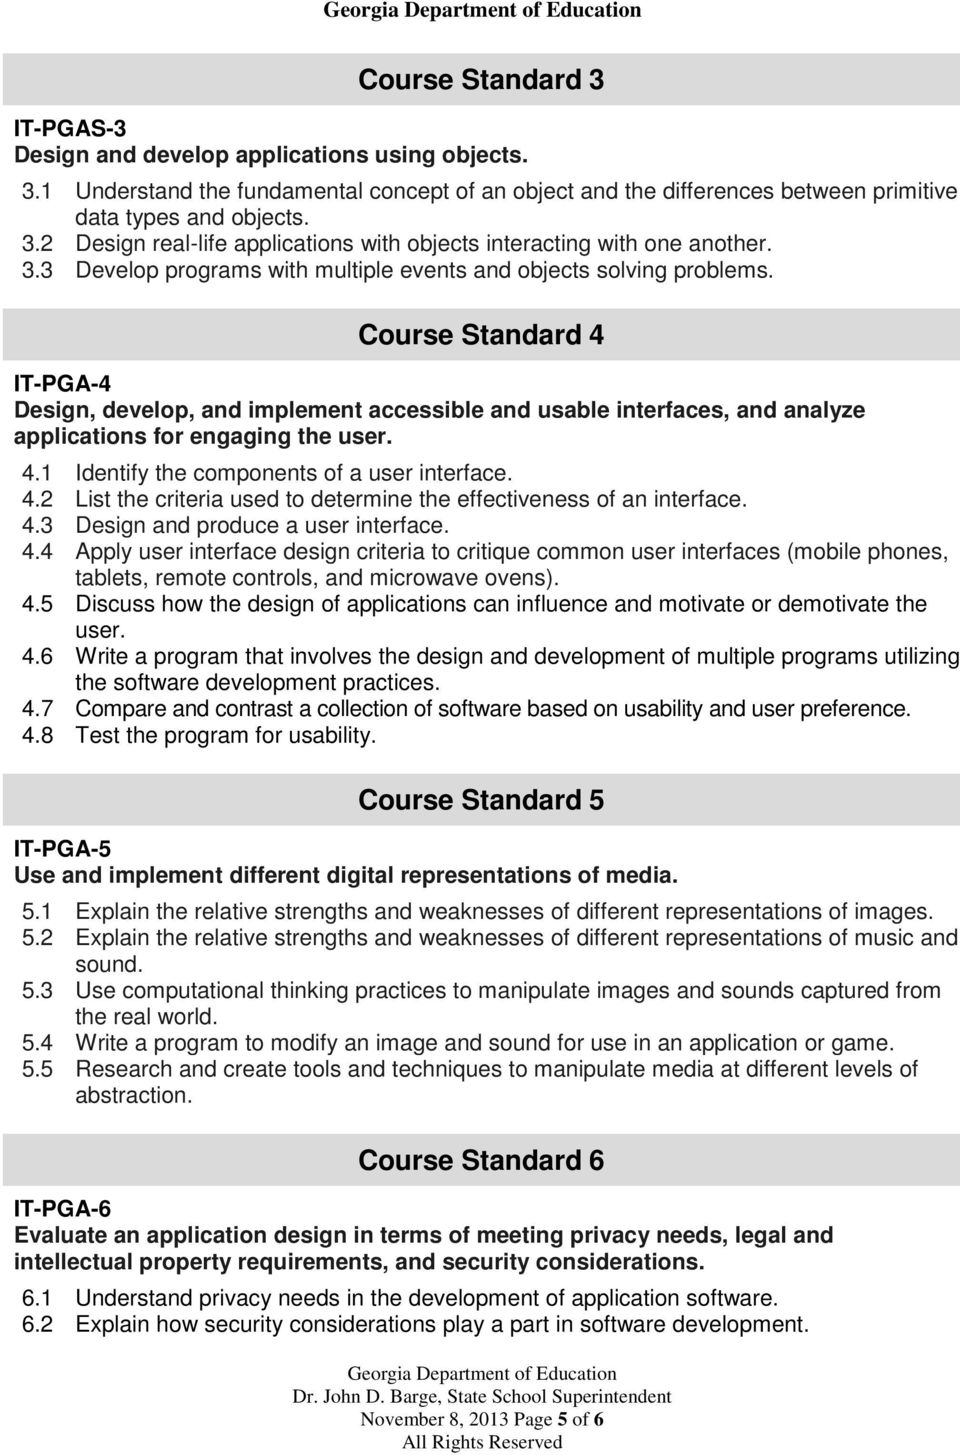 Course Standard 4 IT-PGA-4 Design, develop, and implement accessible and usable interfaces, and analyze applications for engaging the user. 4.1 Identify the components of a user interface. 4.2 List the criteria used to determine the effectiveness of an interface.